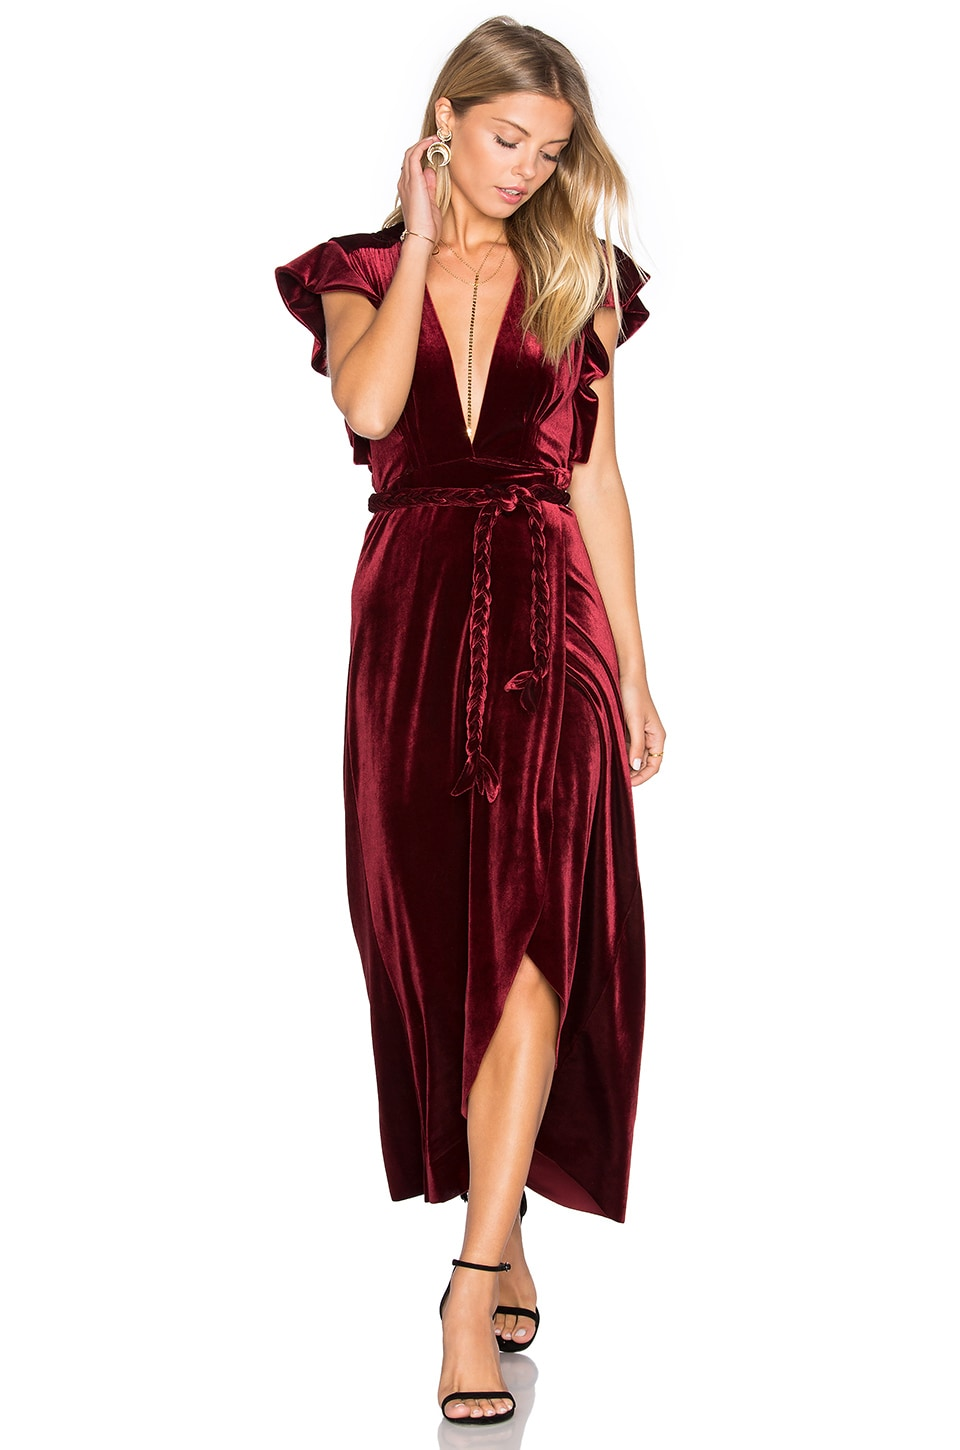 MISA Los Angeles Carolina Dress in Wine